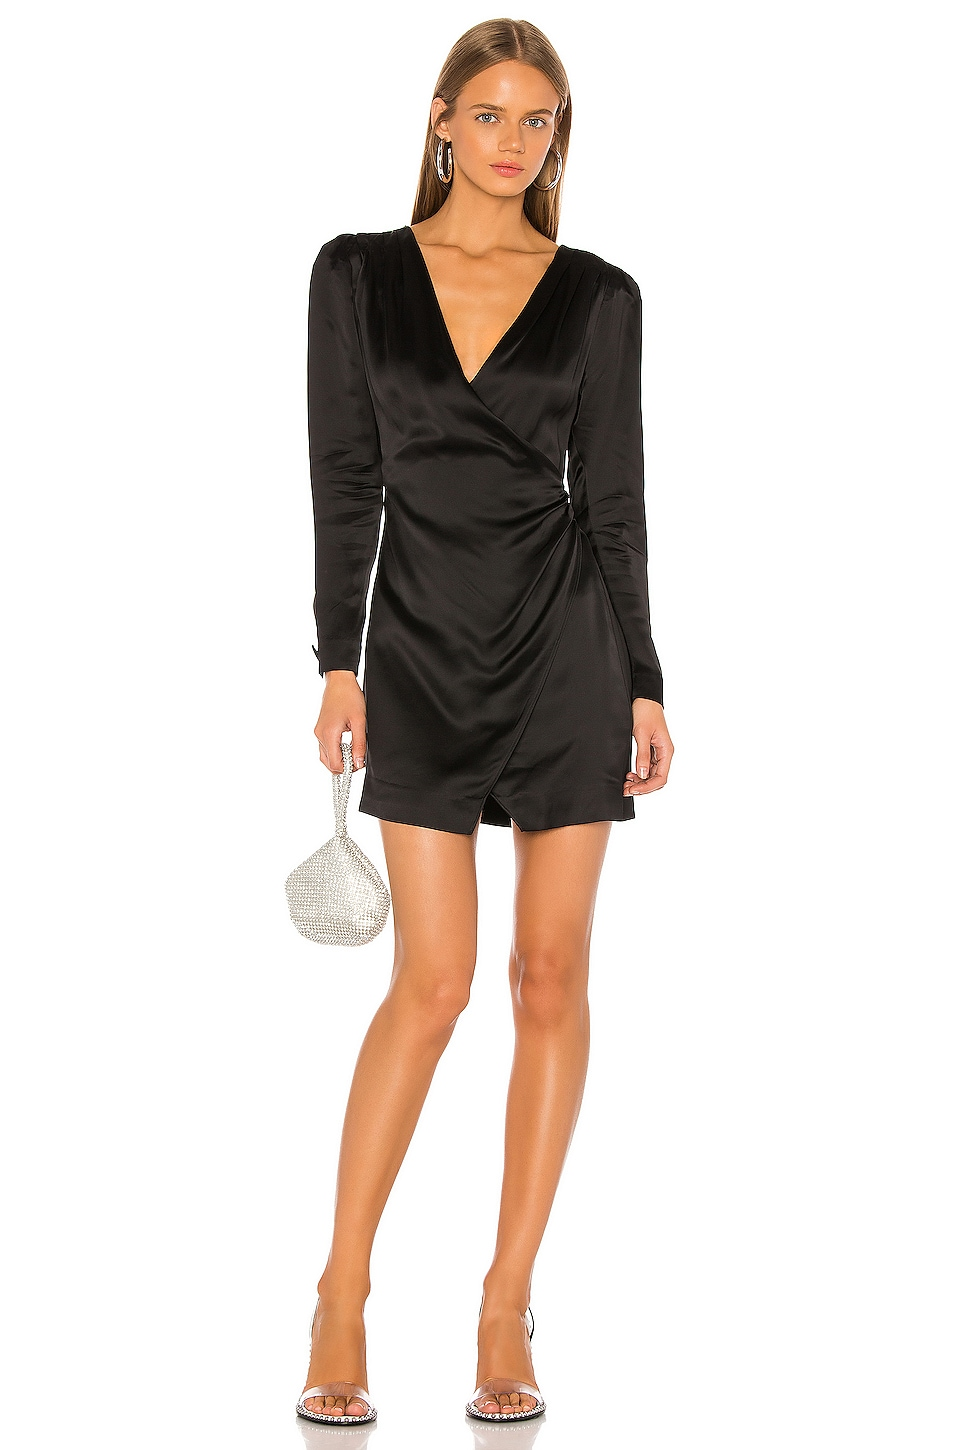 GRLFRND Nik Shirt Dress in Black